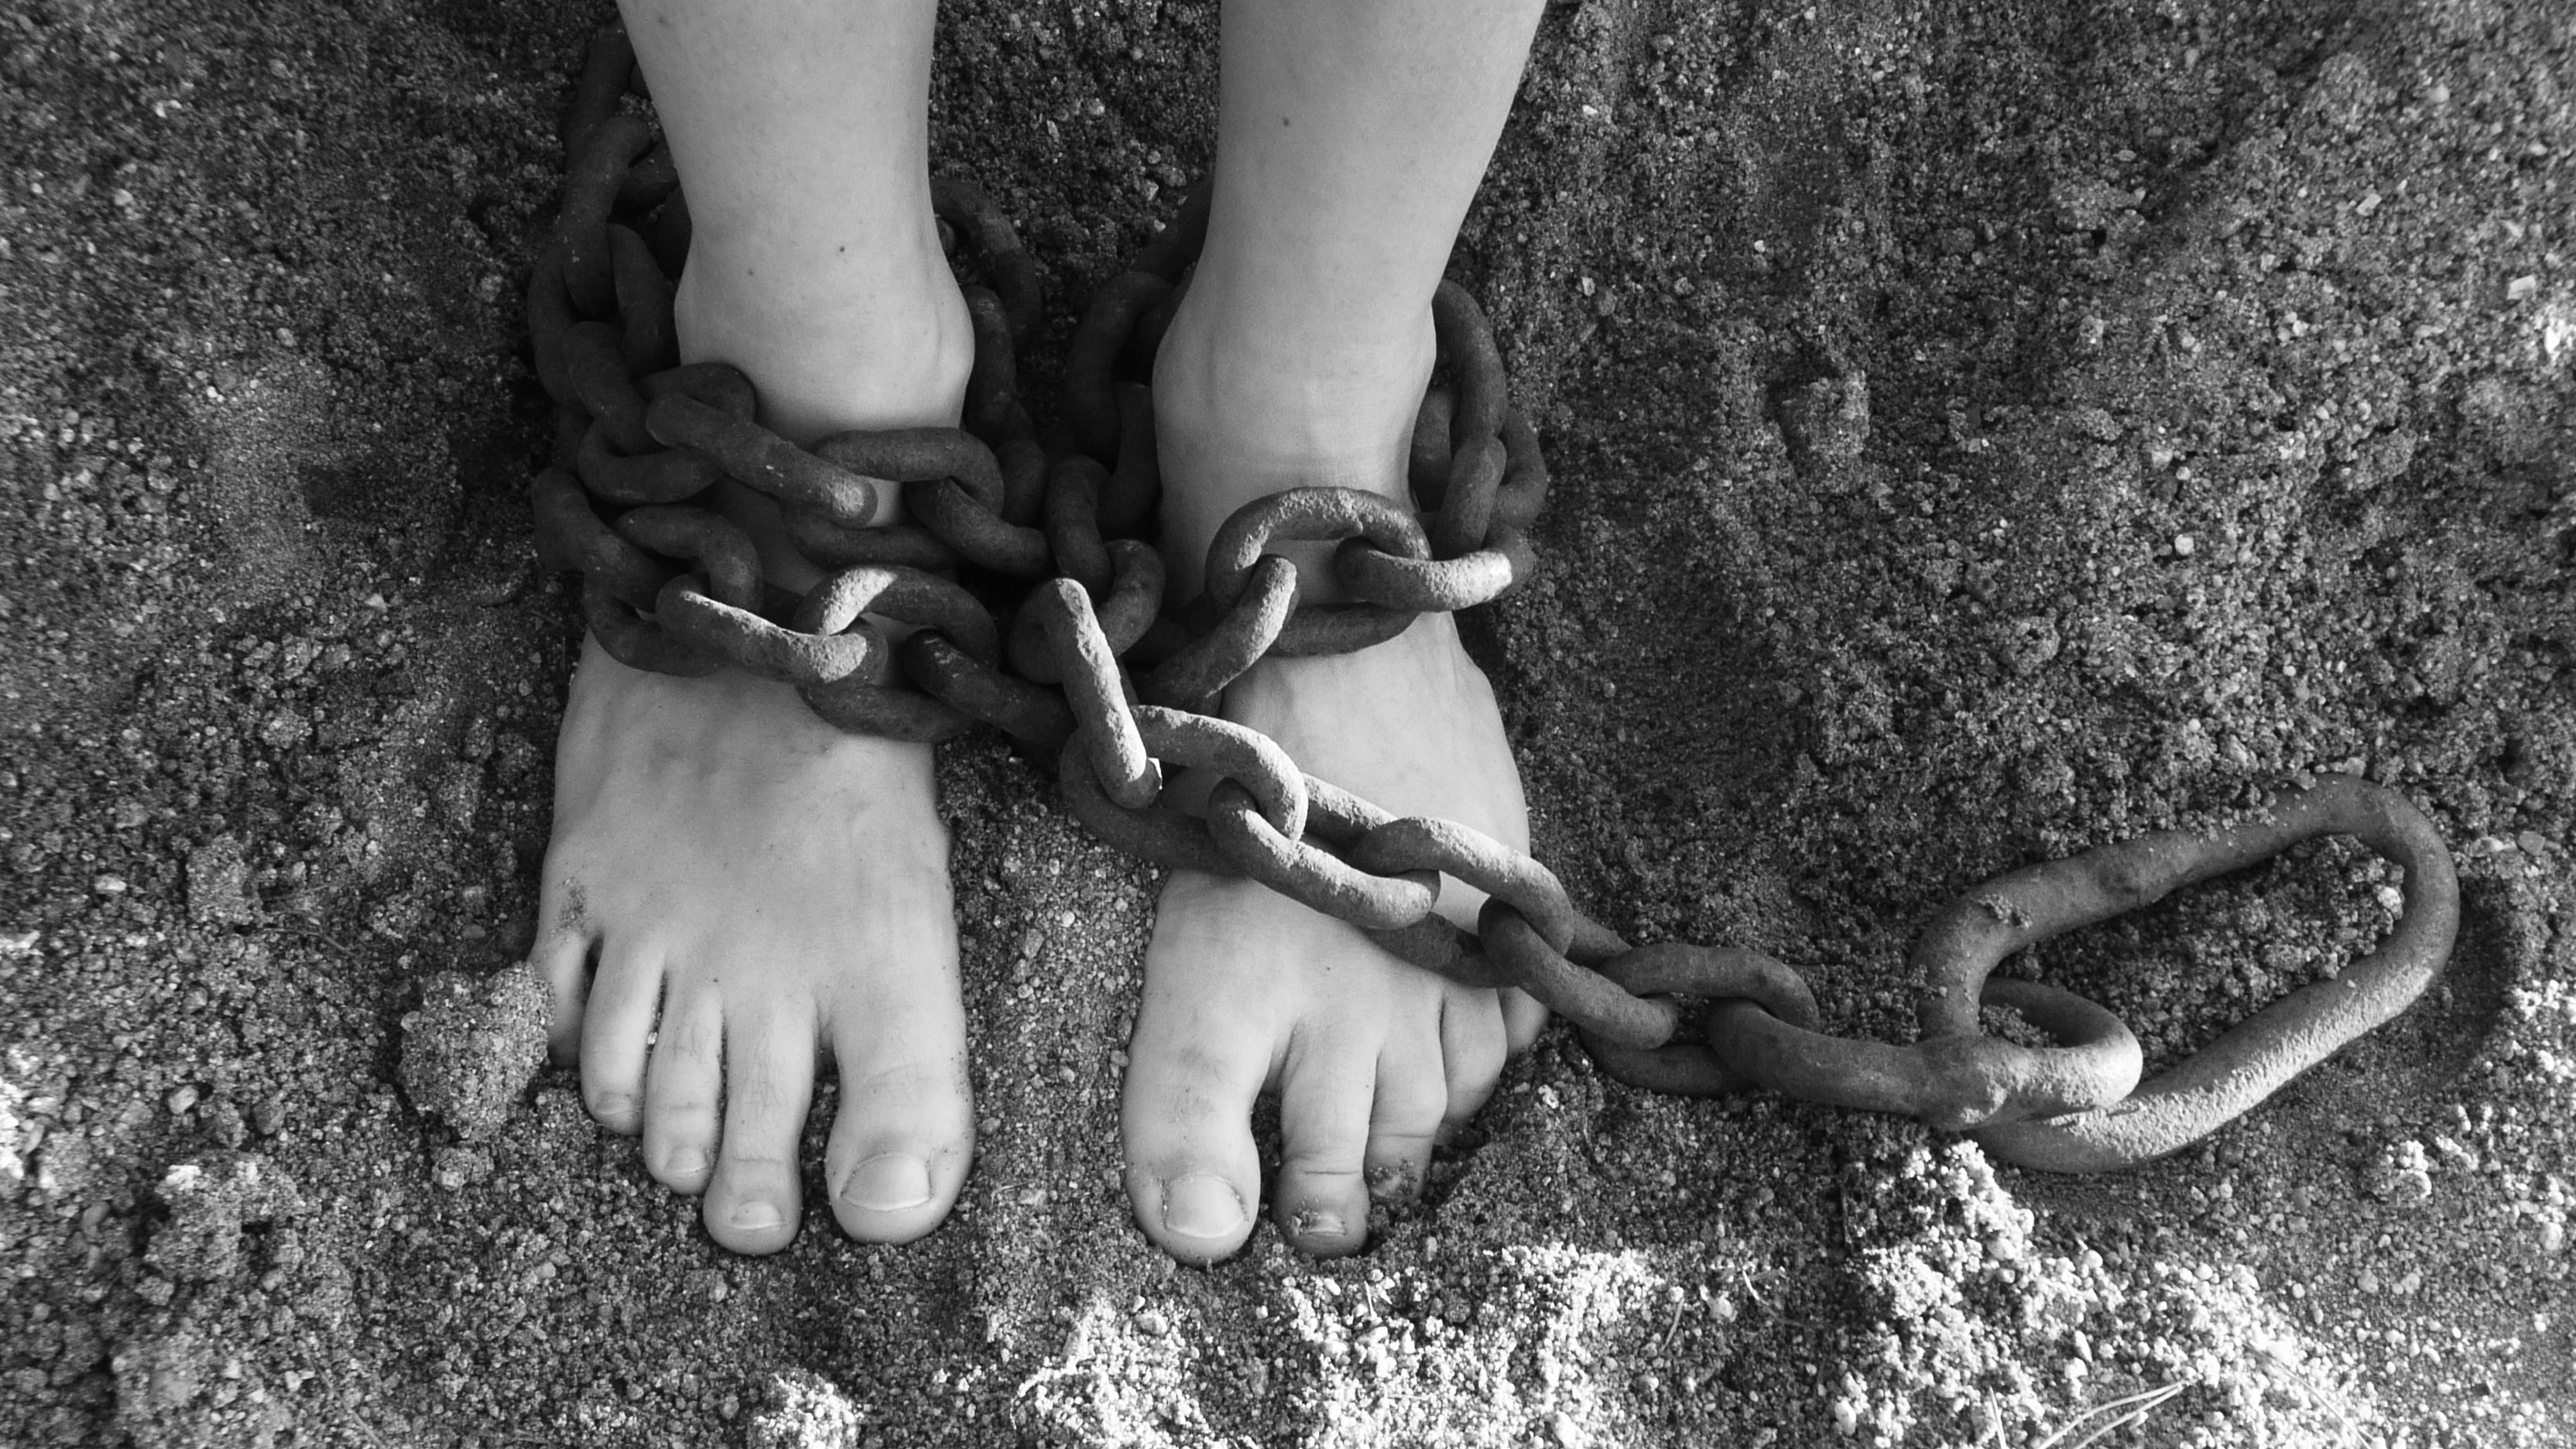 feet in slave chains. perform to be loved and accepted. the end of the futility gods